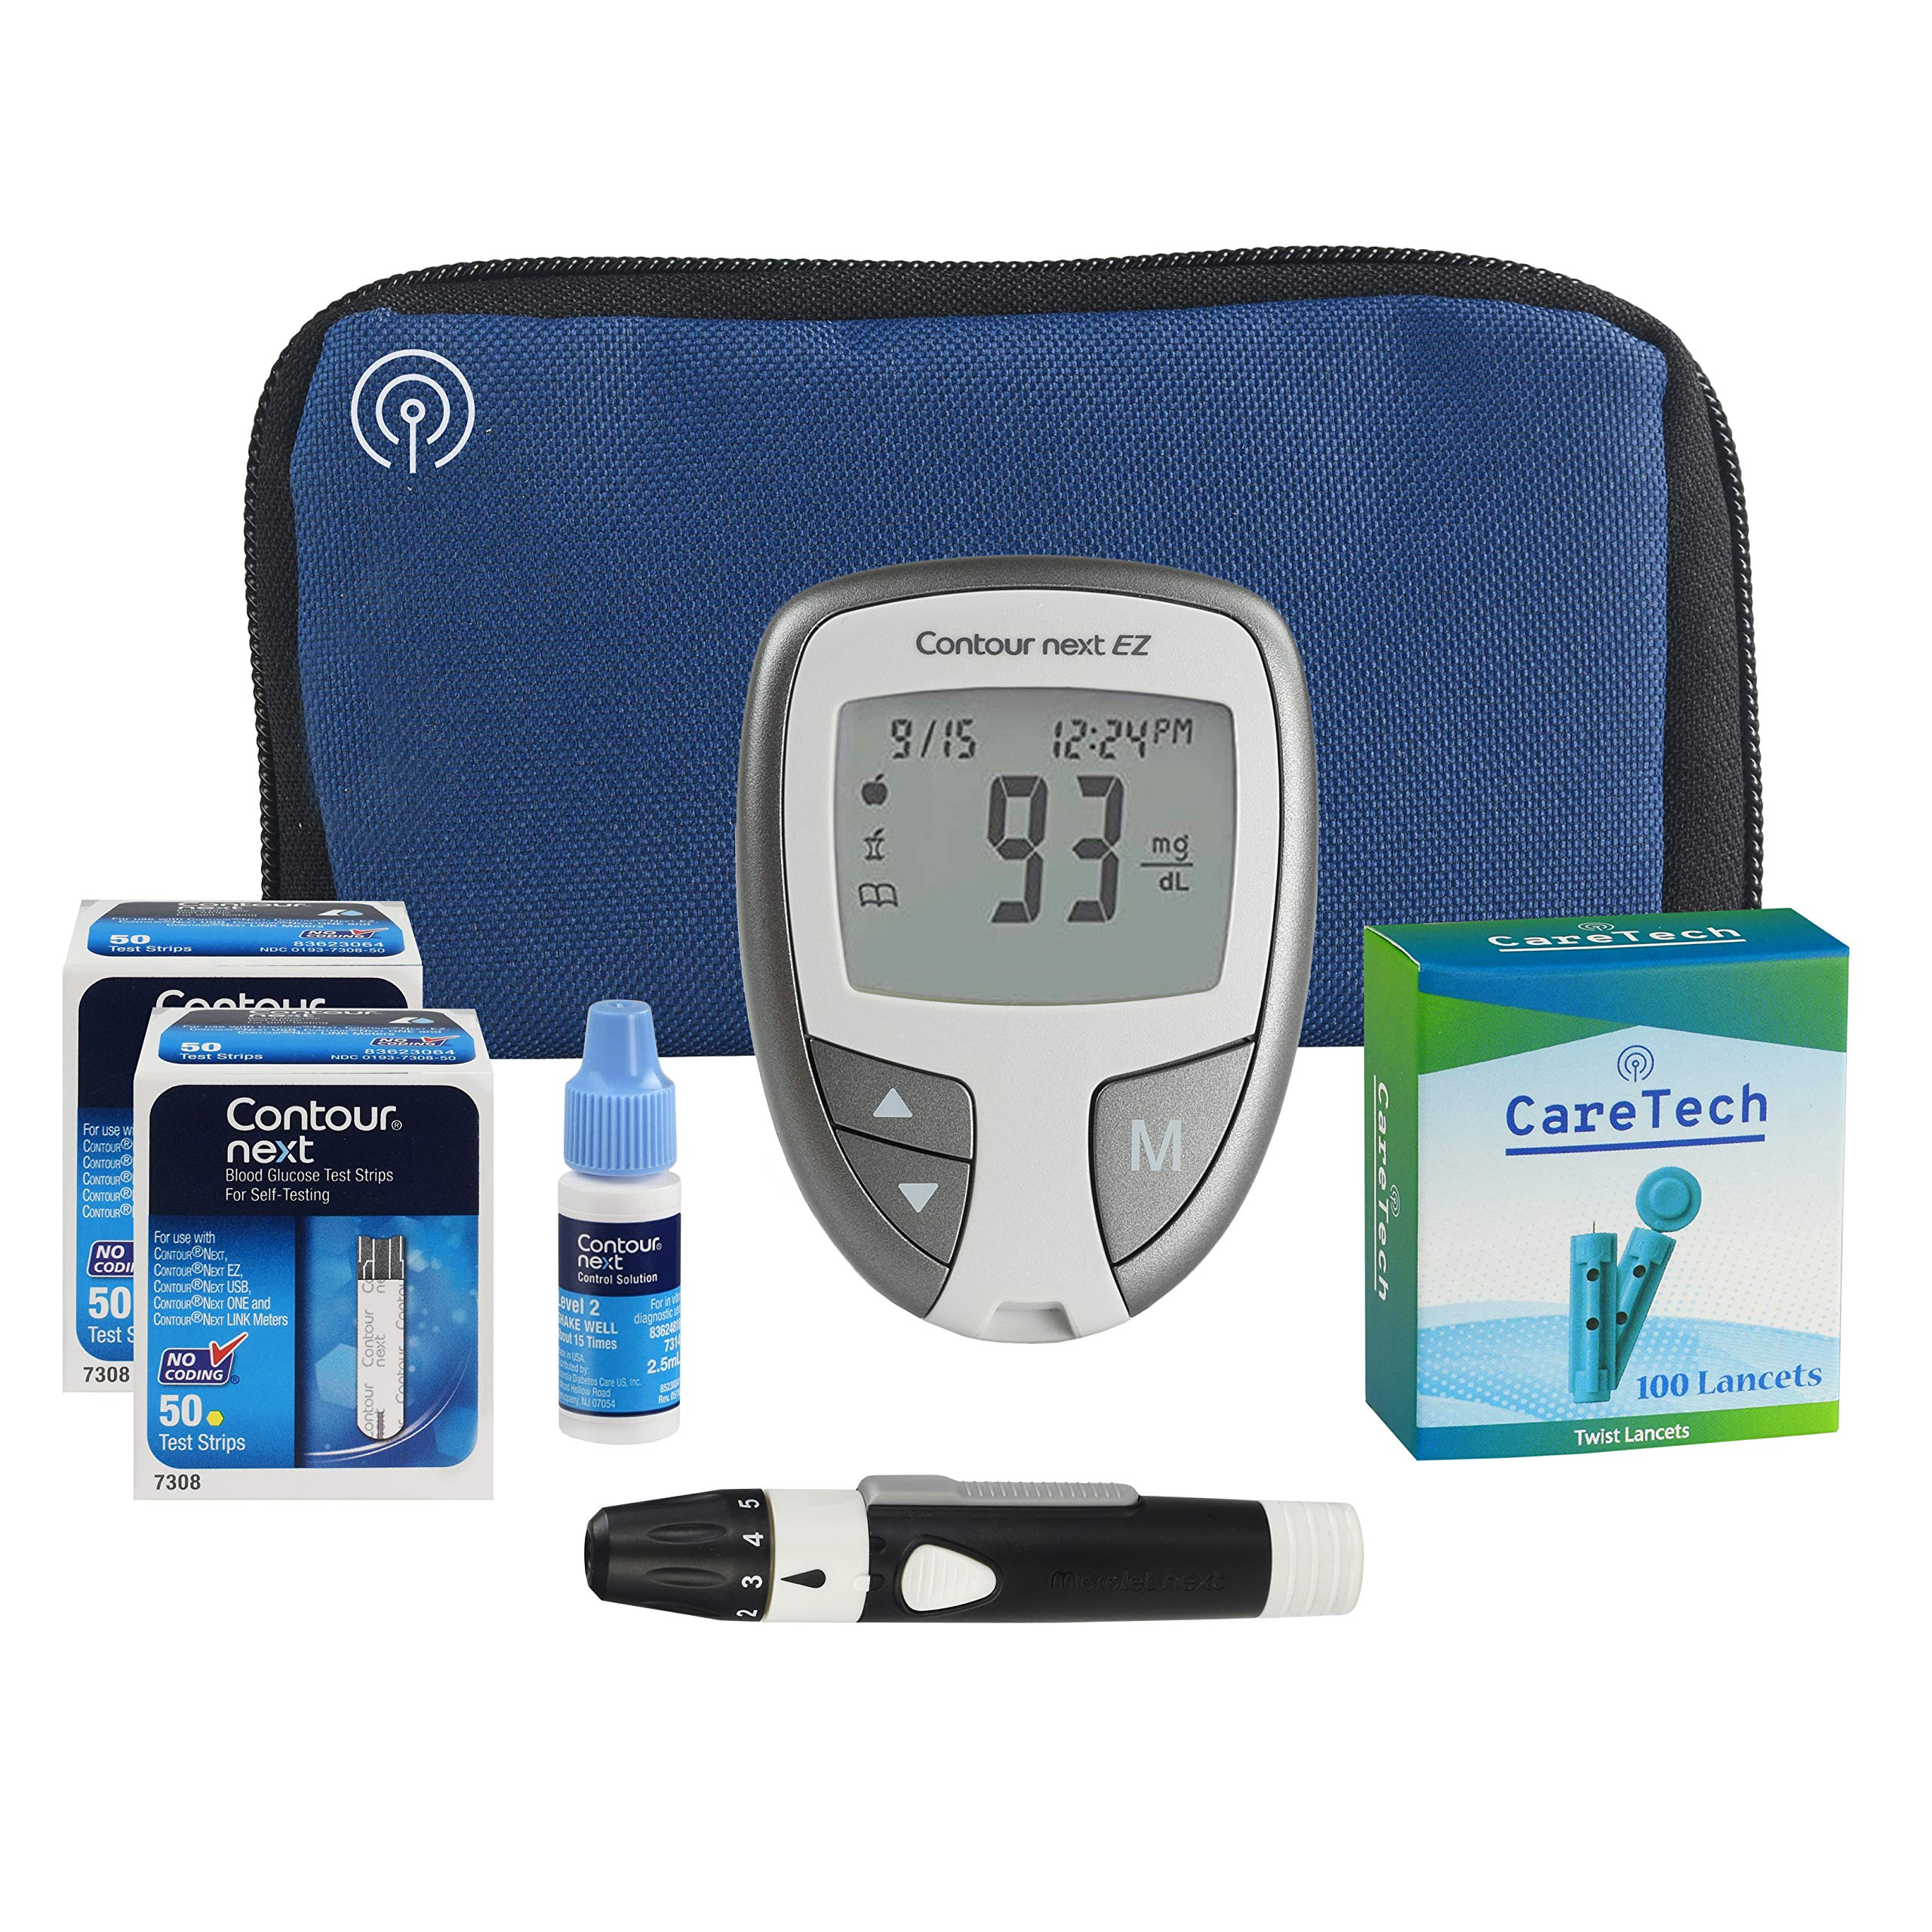 All-Inclusive Blood Glucose Monitoring Starter Kit | Diabetes Testing Pack with Glucose Meter, Test Strips, Control Solution, Lancets, Lancing Device, Carrying Case | Premium Blood Sugar Testing by Care Tech